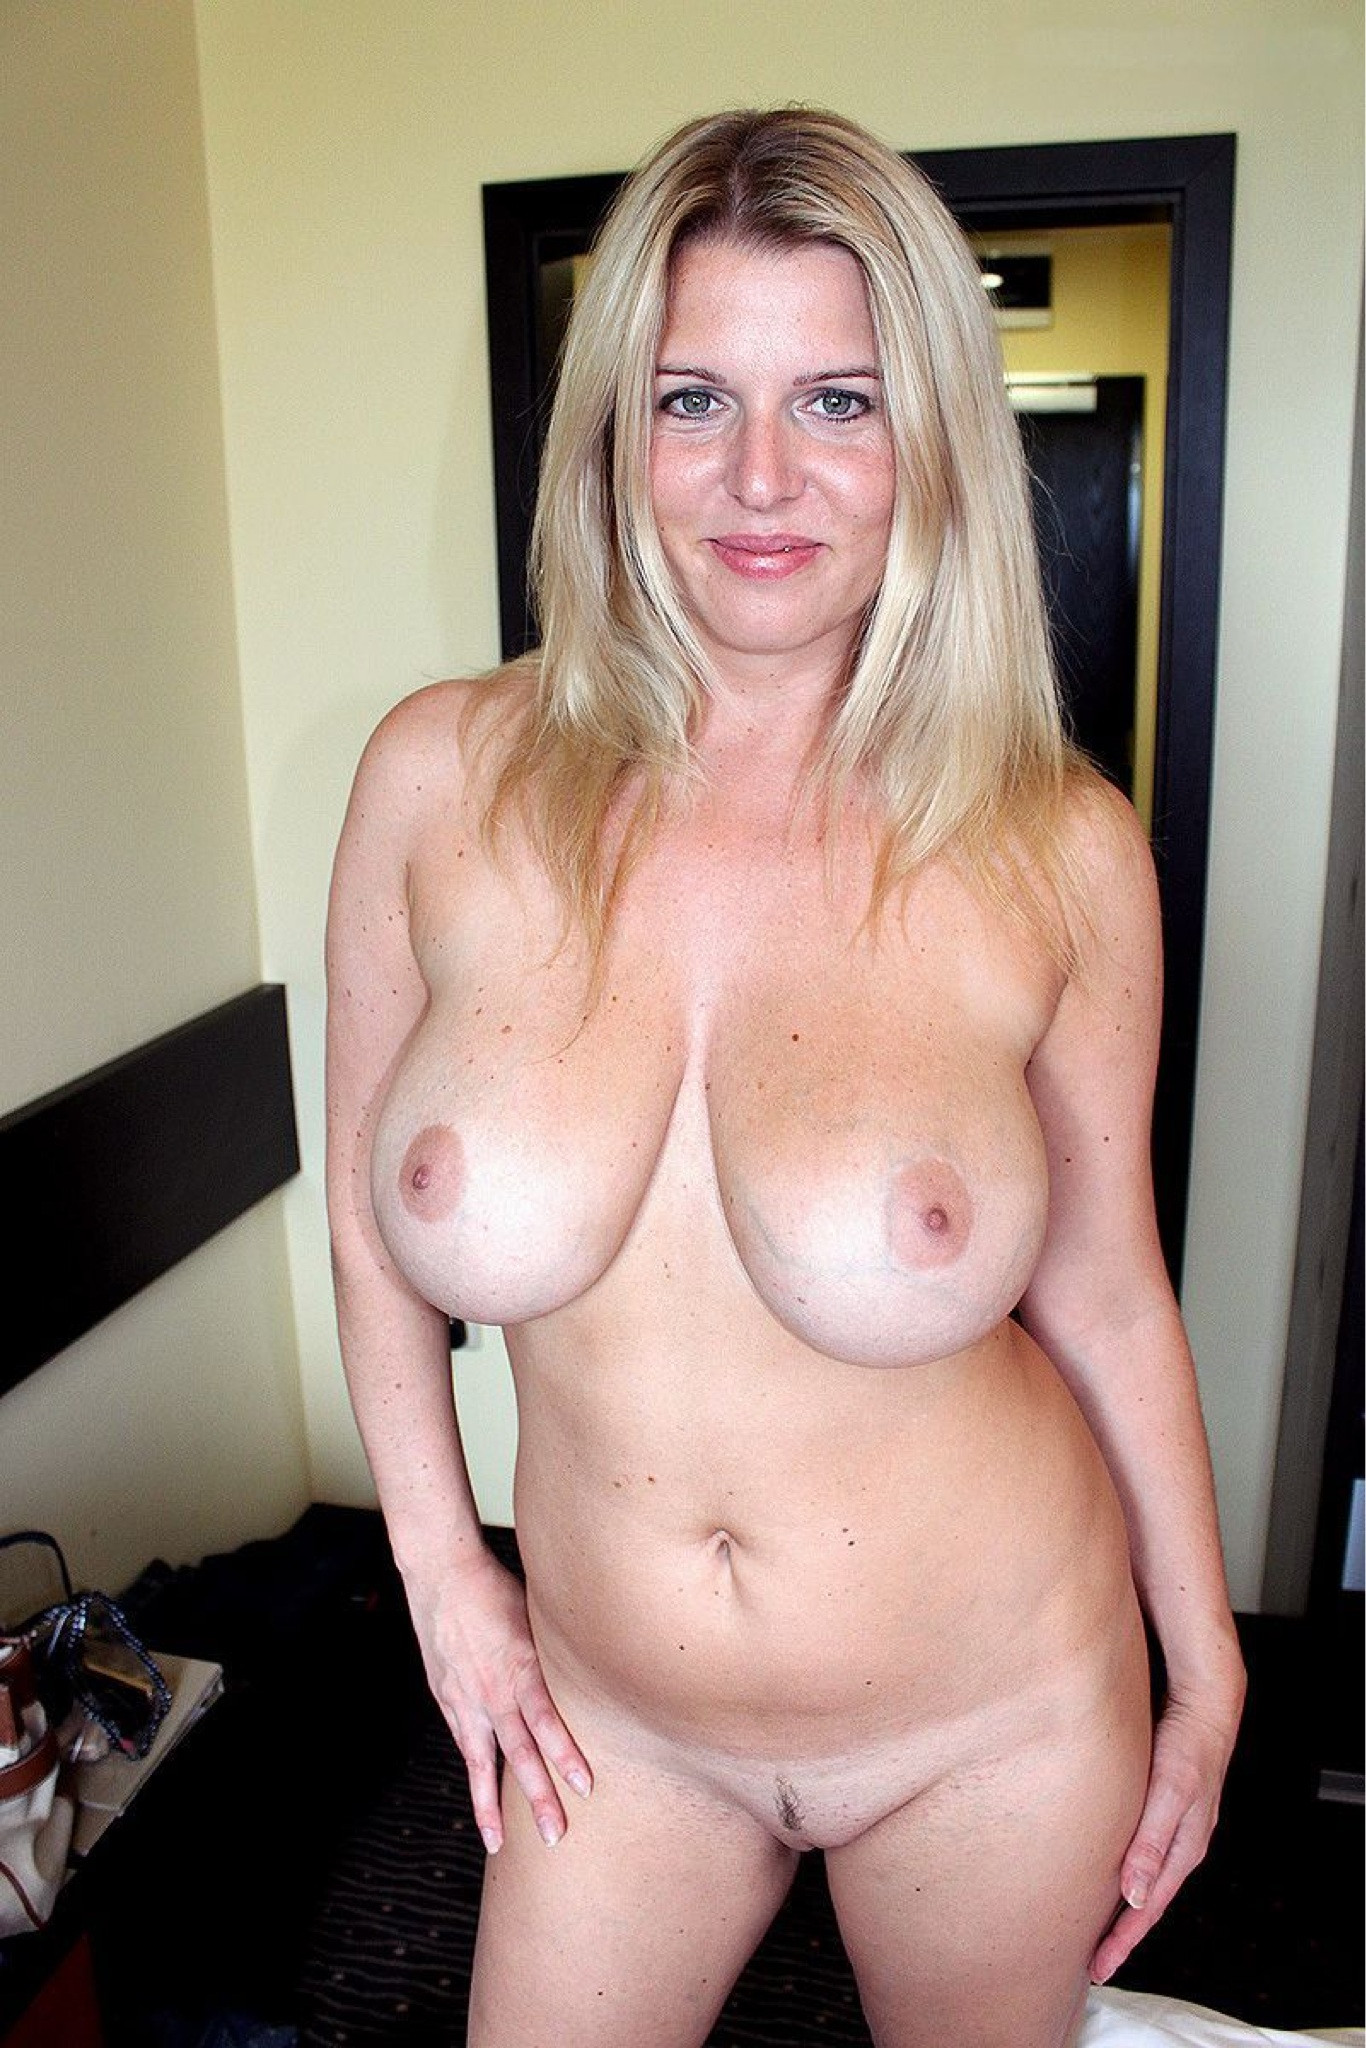 Blonde Milf Squirt Webcam